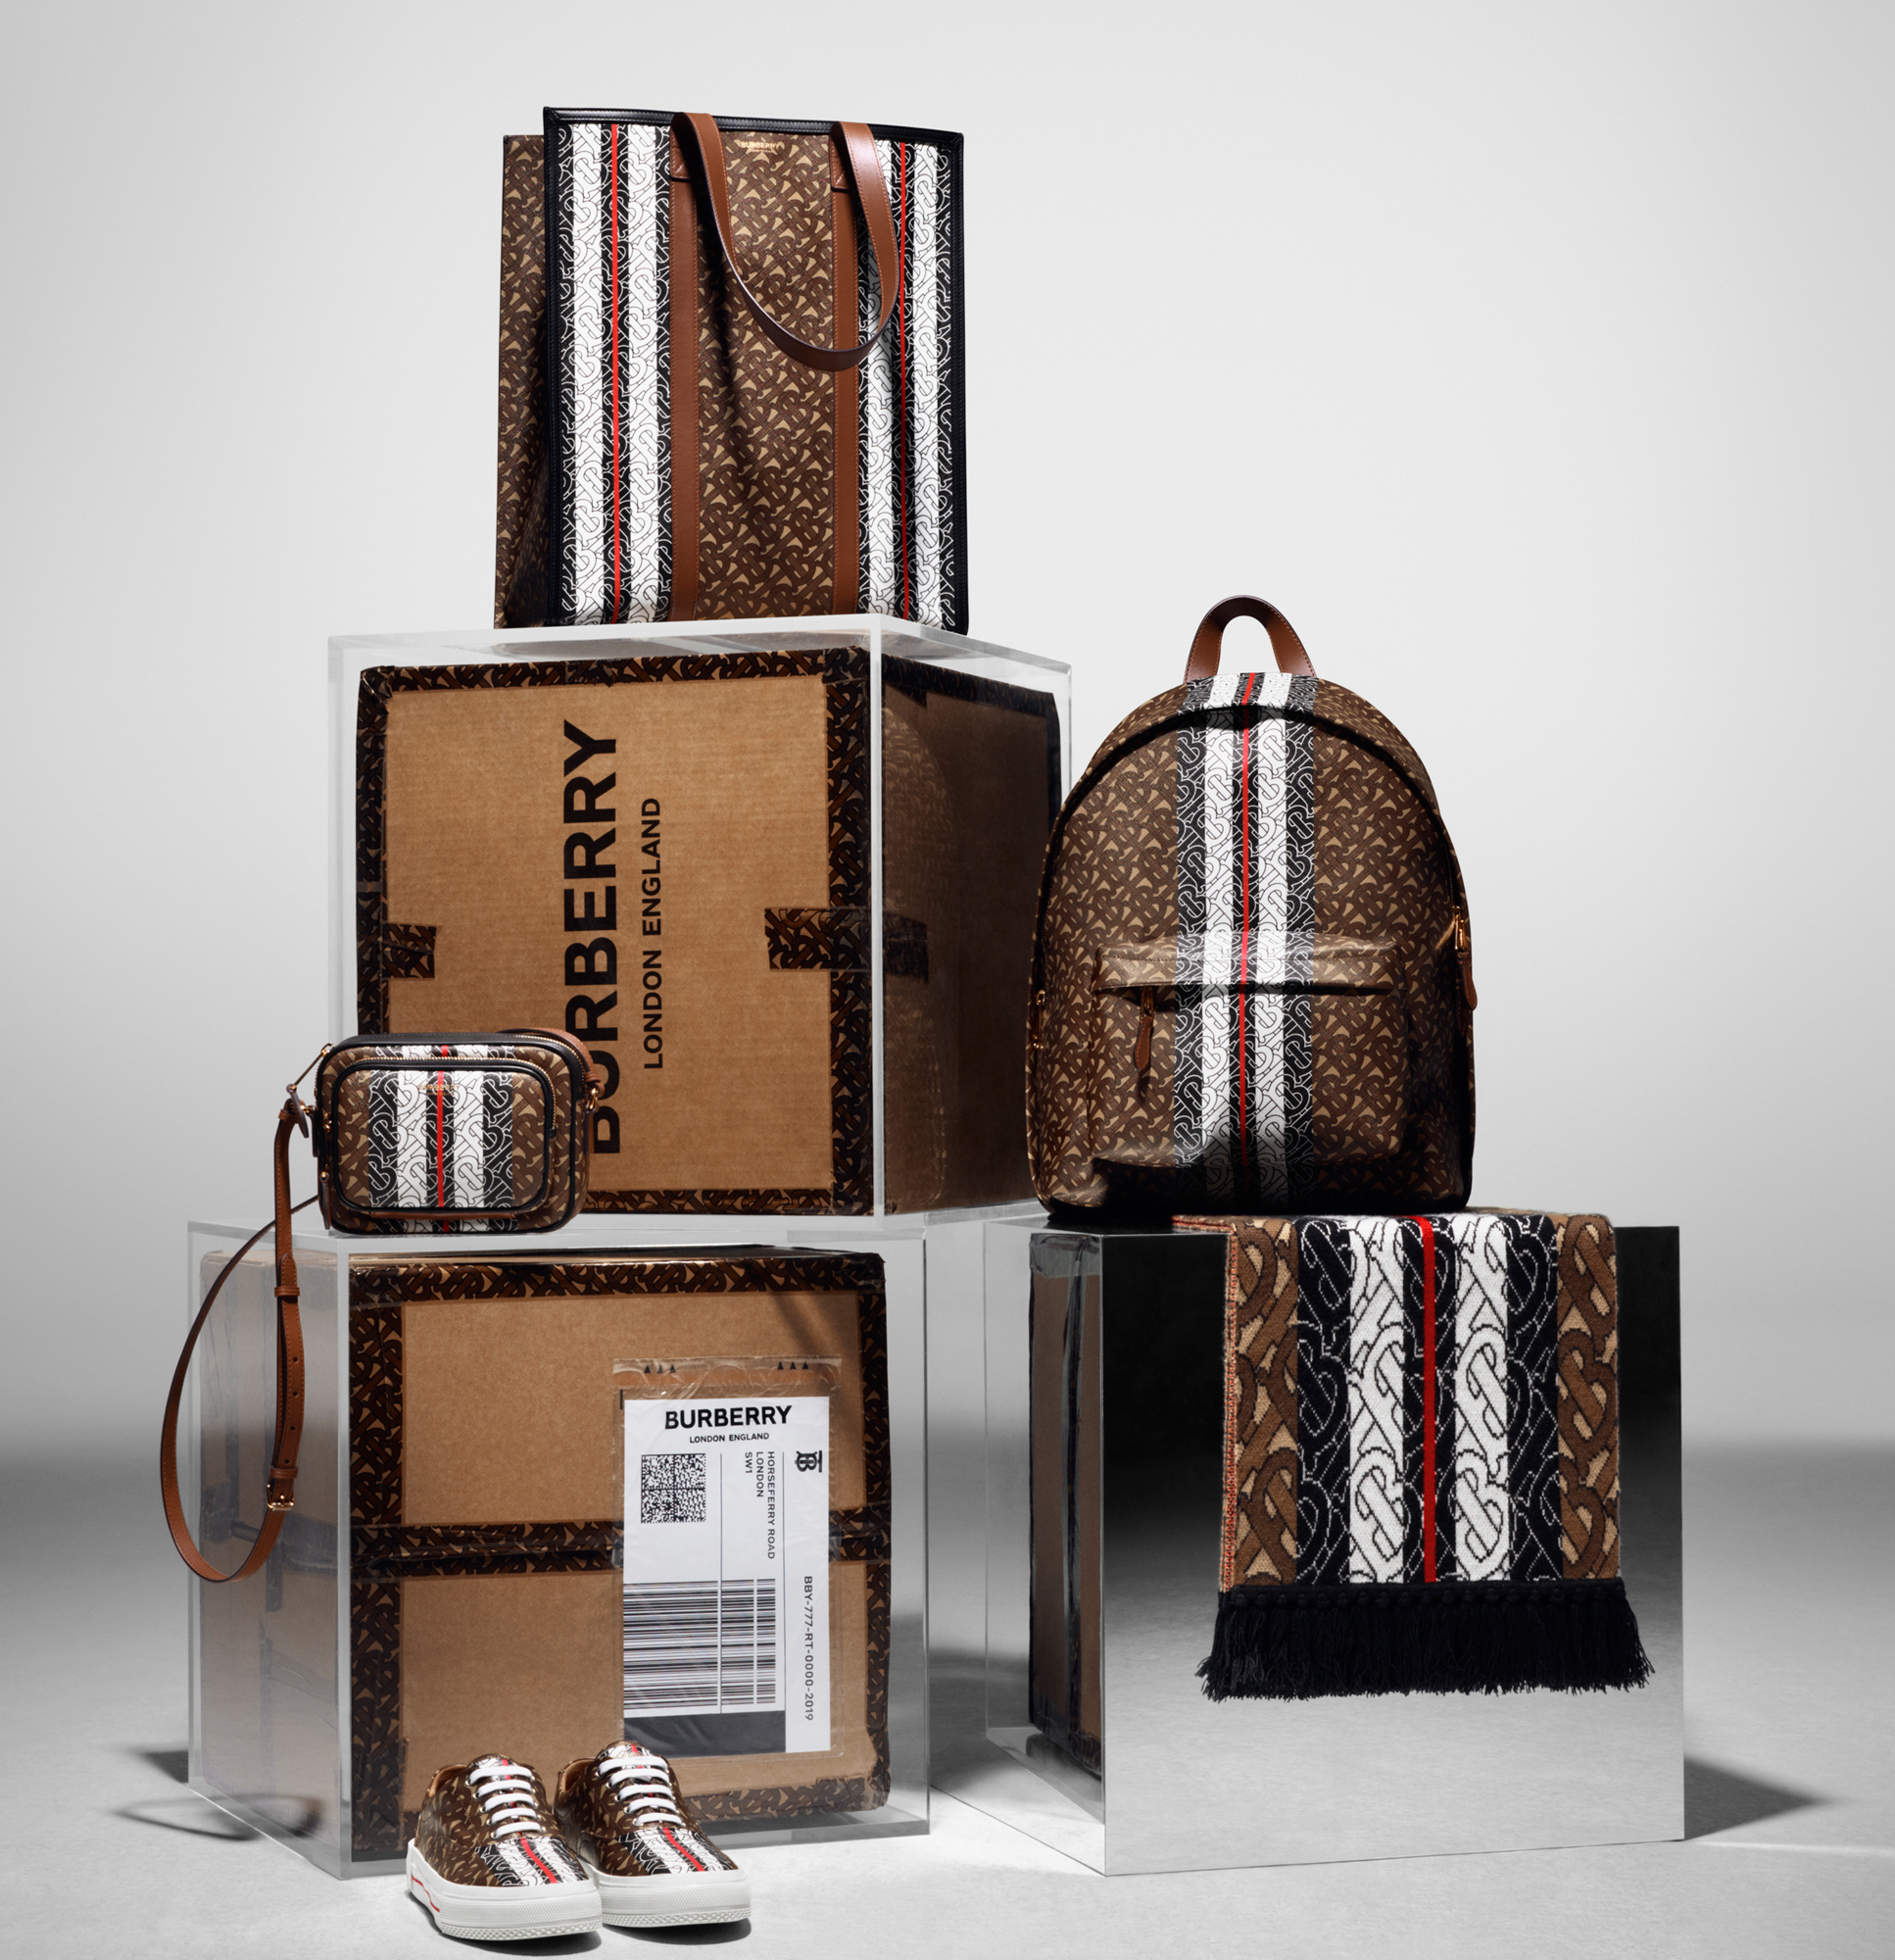 Gigi-Hadid-Gender-Bending-Burberry-Campaign - Among the new accessories in the Thomas Burberry Monogram collection: a tote, backpack, shoulder bag, sneakers and more.